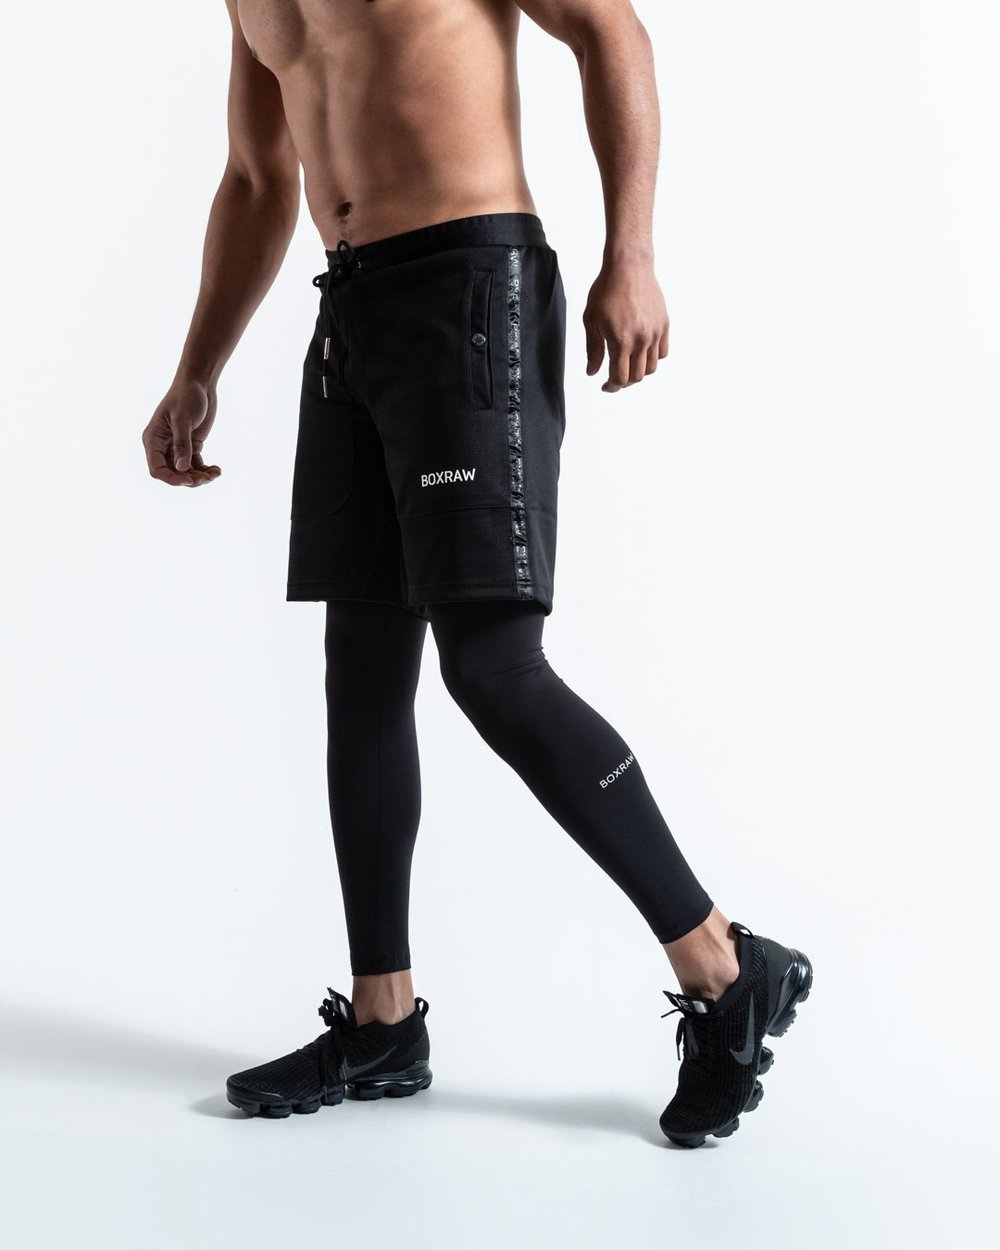 PEP SHORTS (2-IN-1 TRAINING TIGHTS) BLACK - Pandemic Fight Gear Inc.